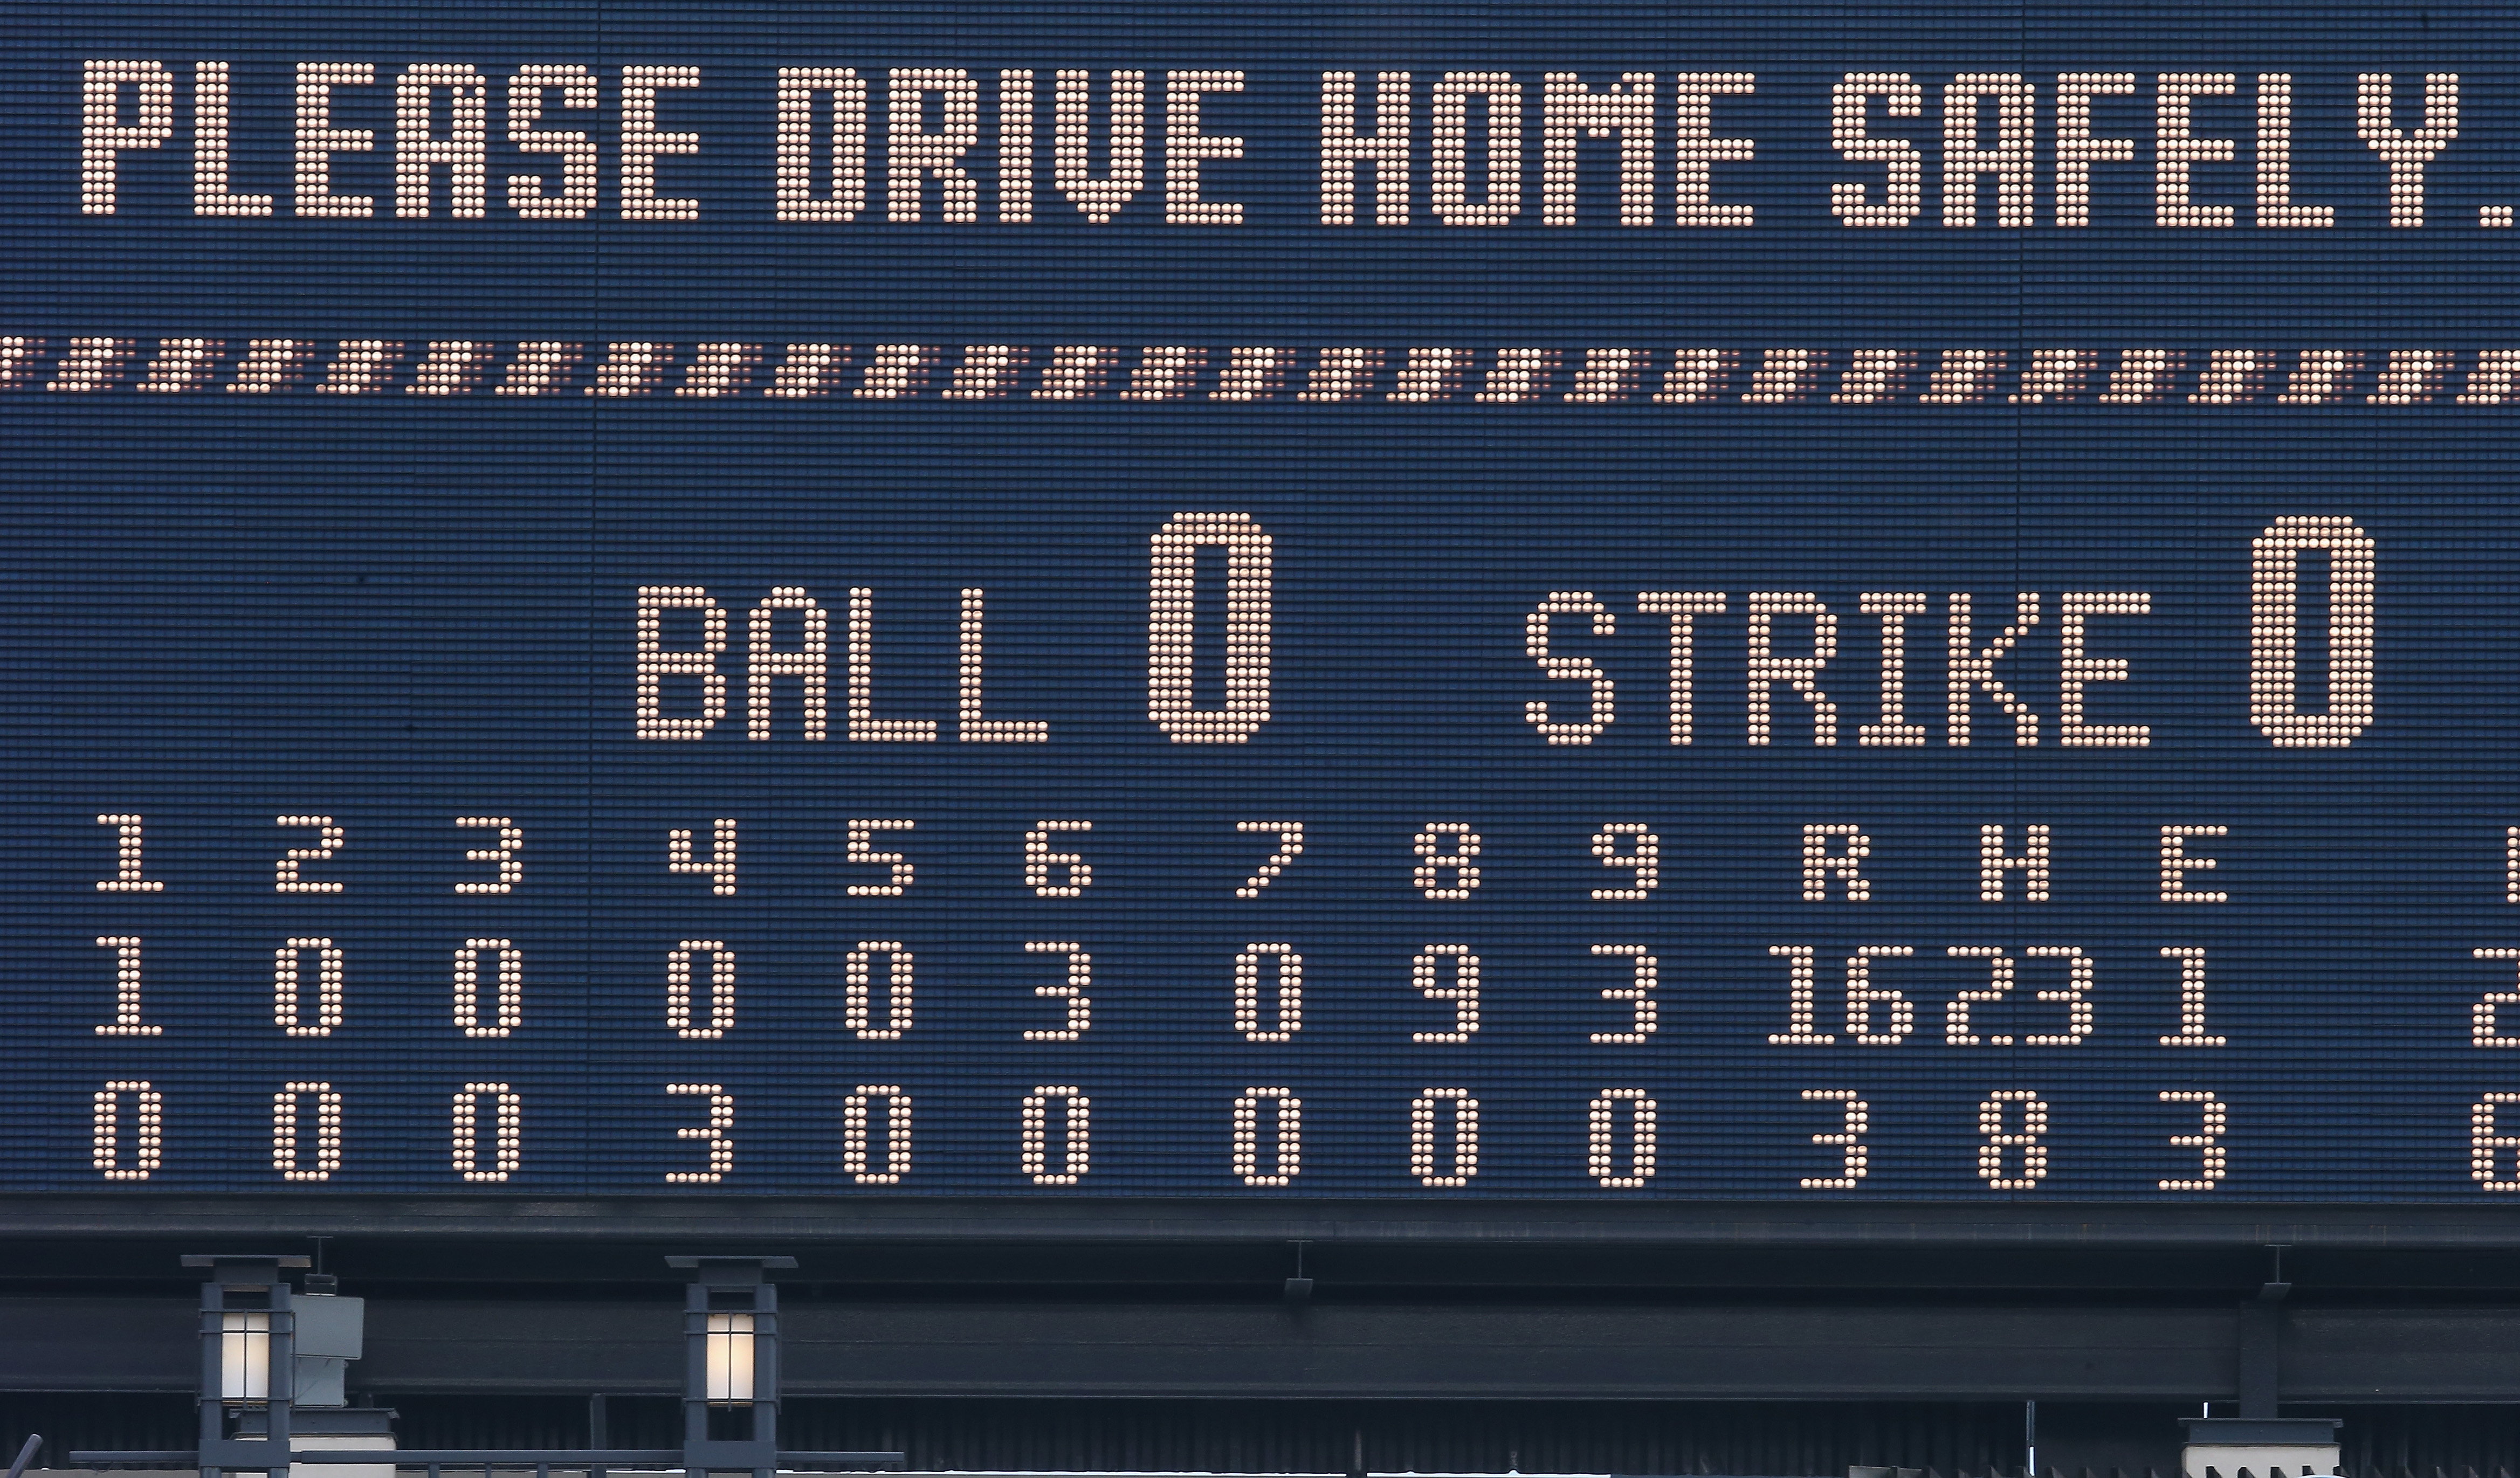 The Mercy Rule is reserved for games like this...